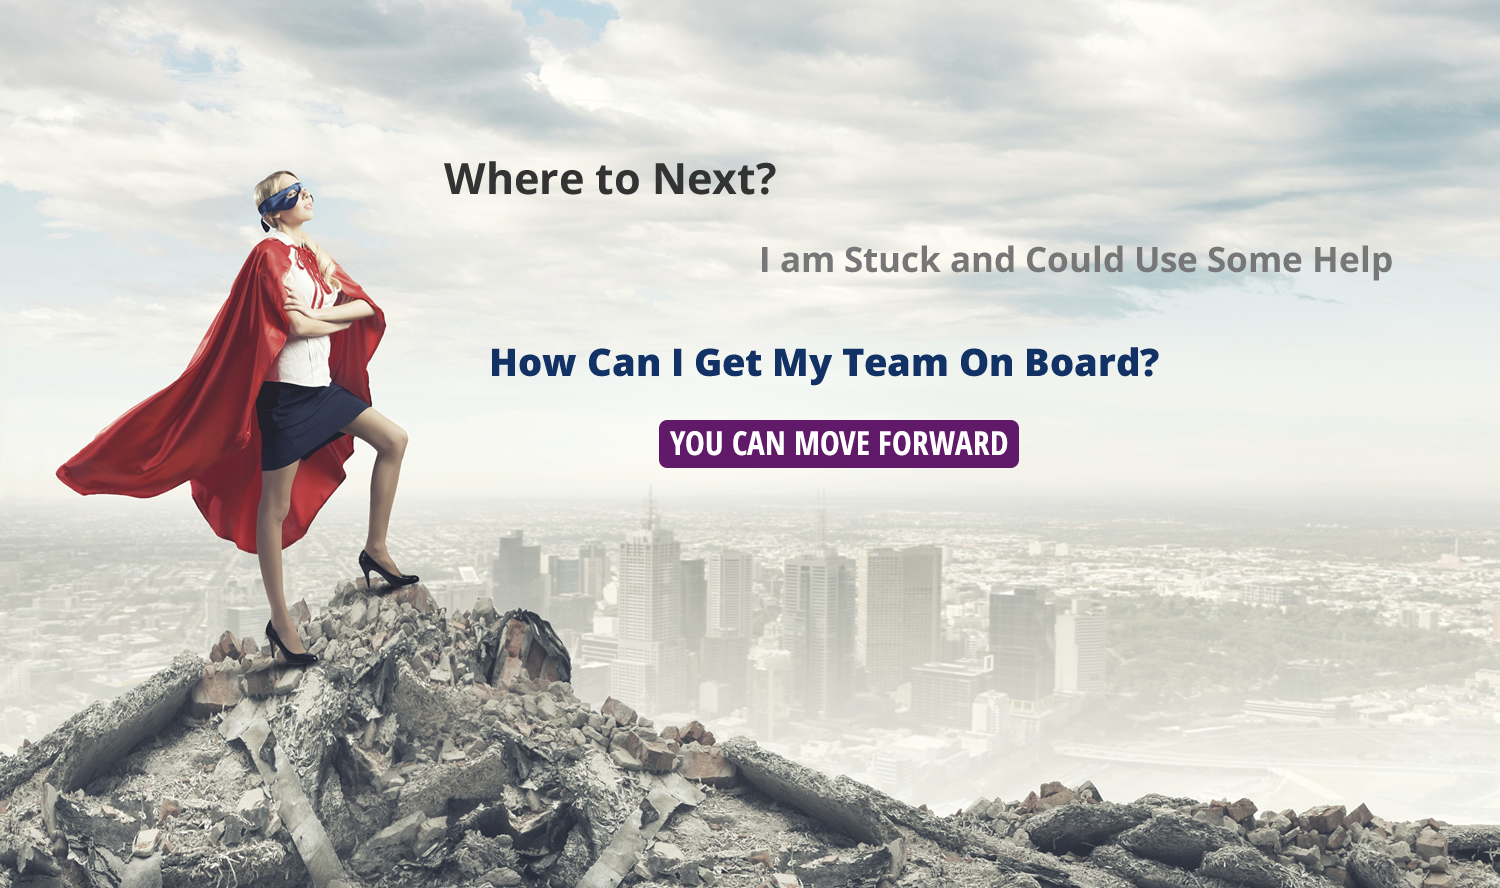 Where to Next?  I am stuck and could use some help.  How do I get my team on board?  You can move forward.